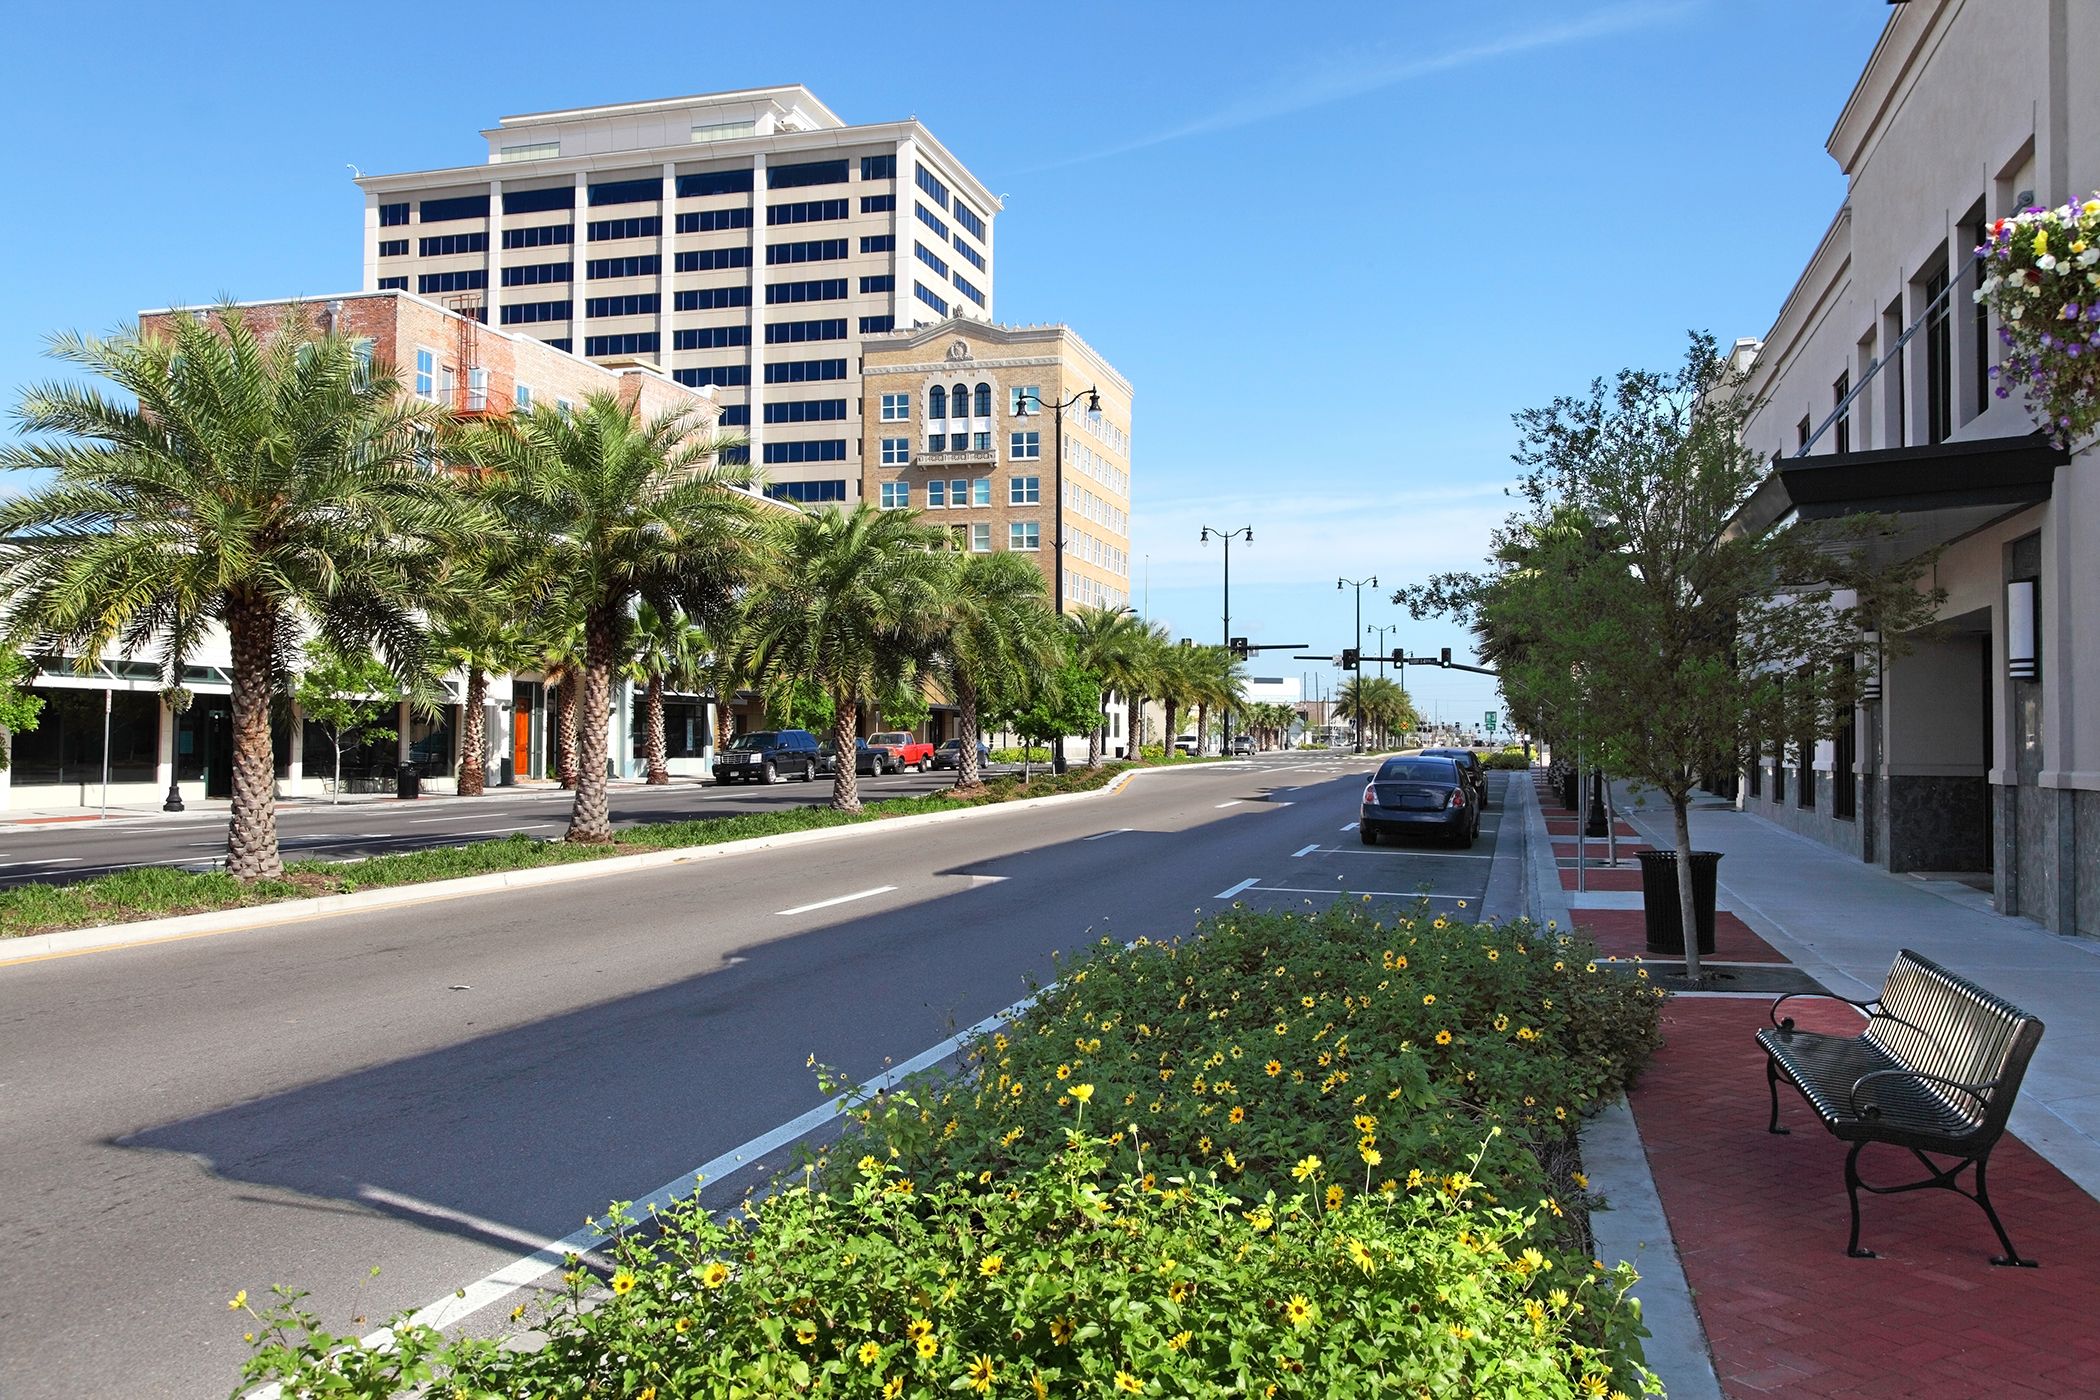 <strong>Gulfport, Mississippi. </strong>Among its attractions are a 250-acre Gulfport Sportsplex and Gulf Islands Water Park, the largest water park on the coast.